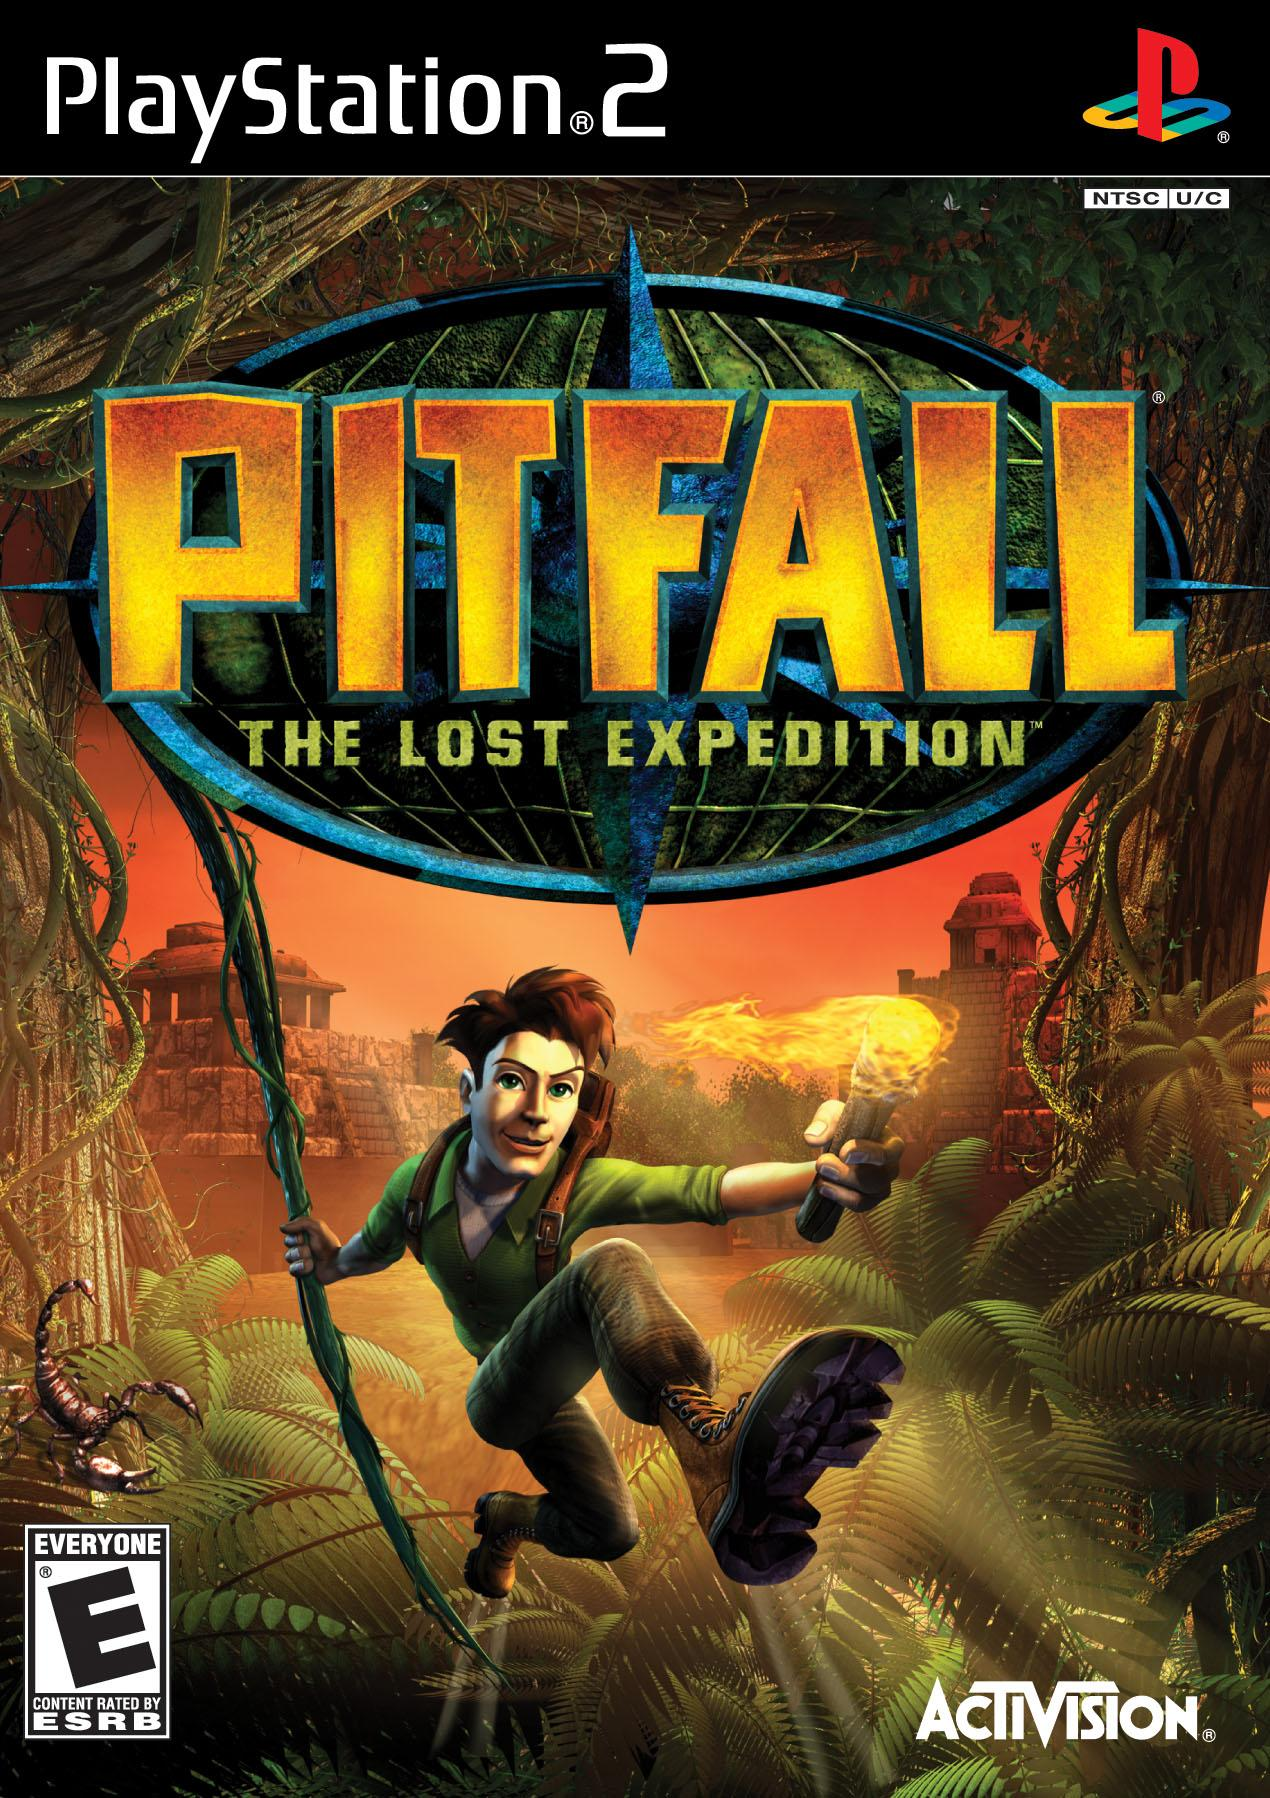 File:Pitfall - The Lost Expedition Coverart.jpg